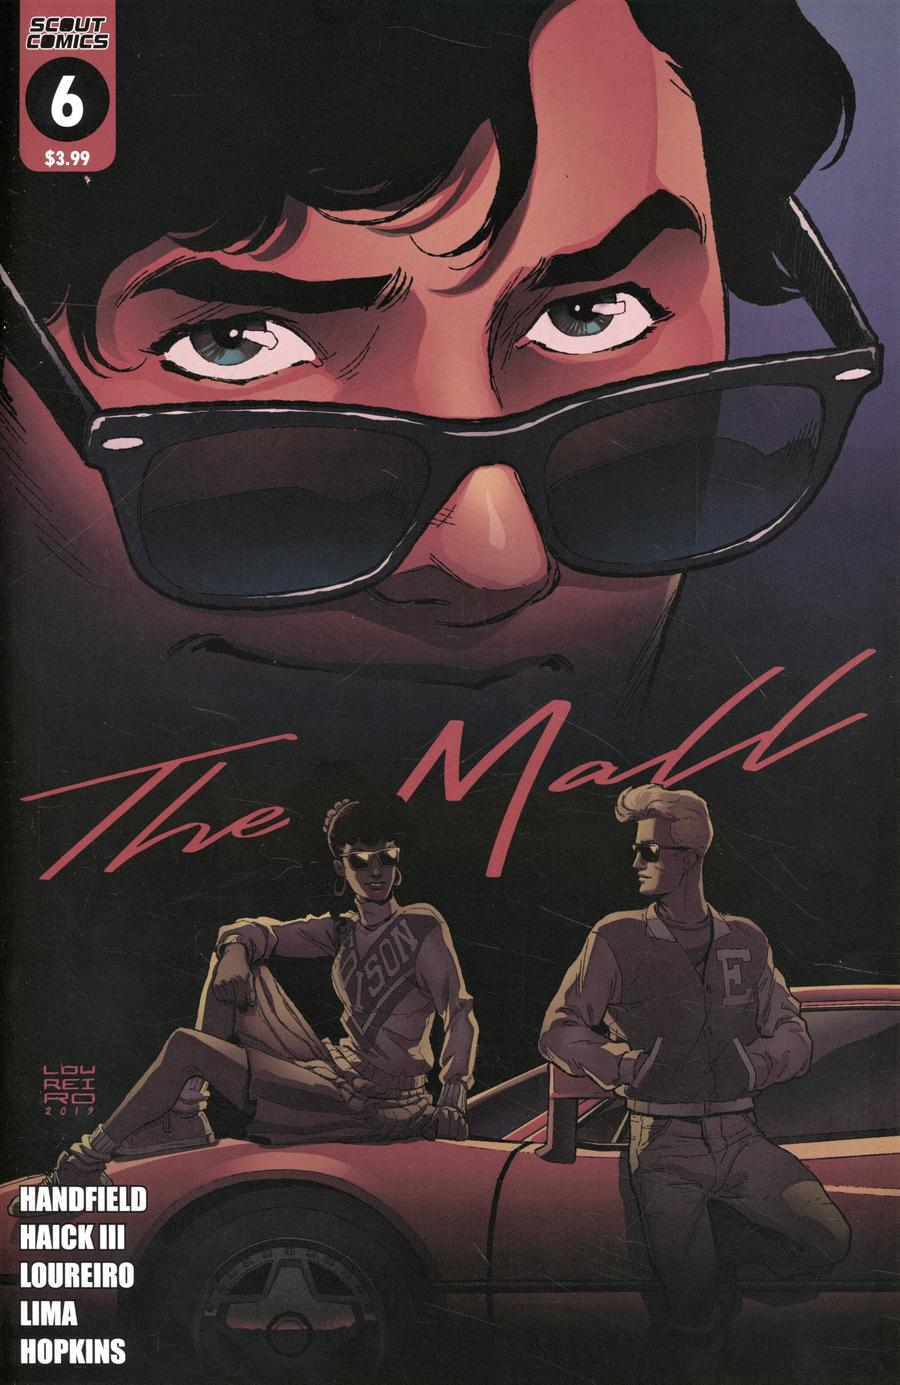 Mall (Scout Comics) #6 Cover B Variant Cover